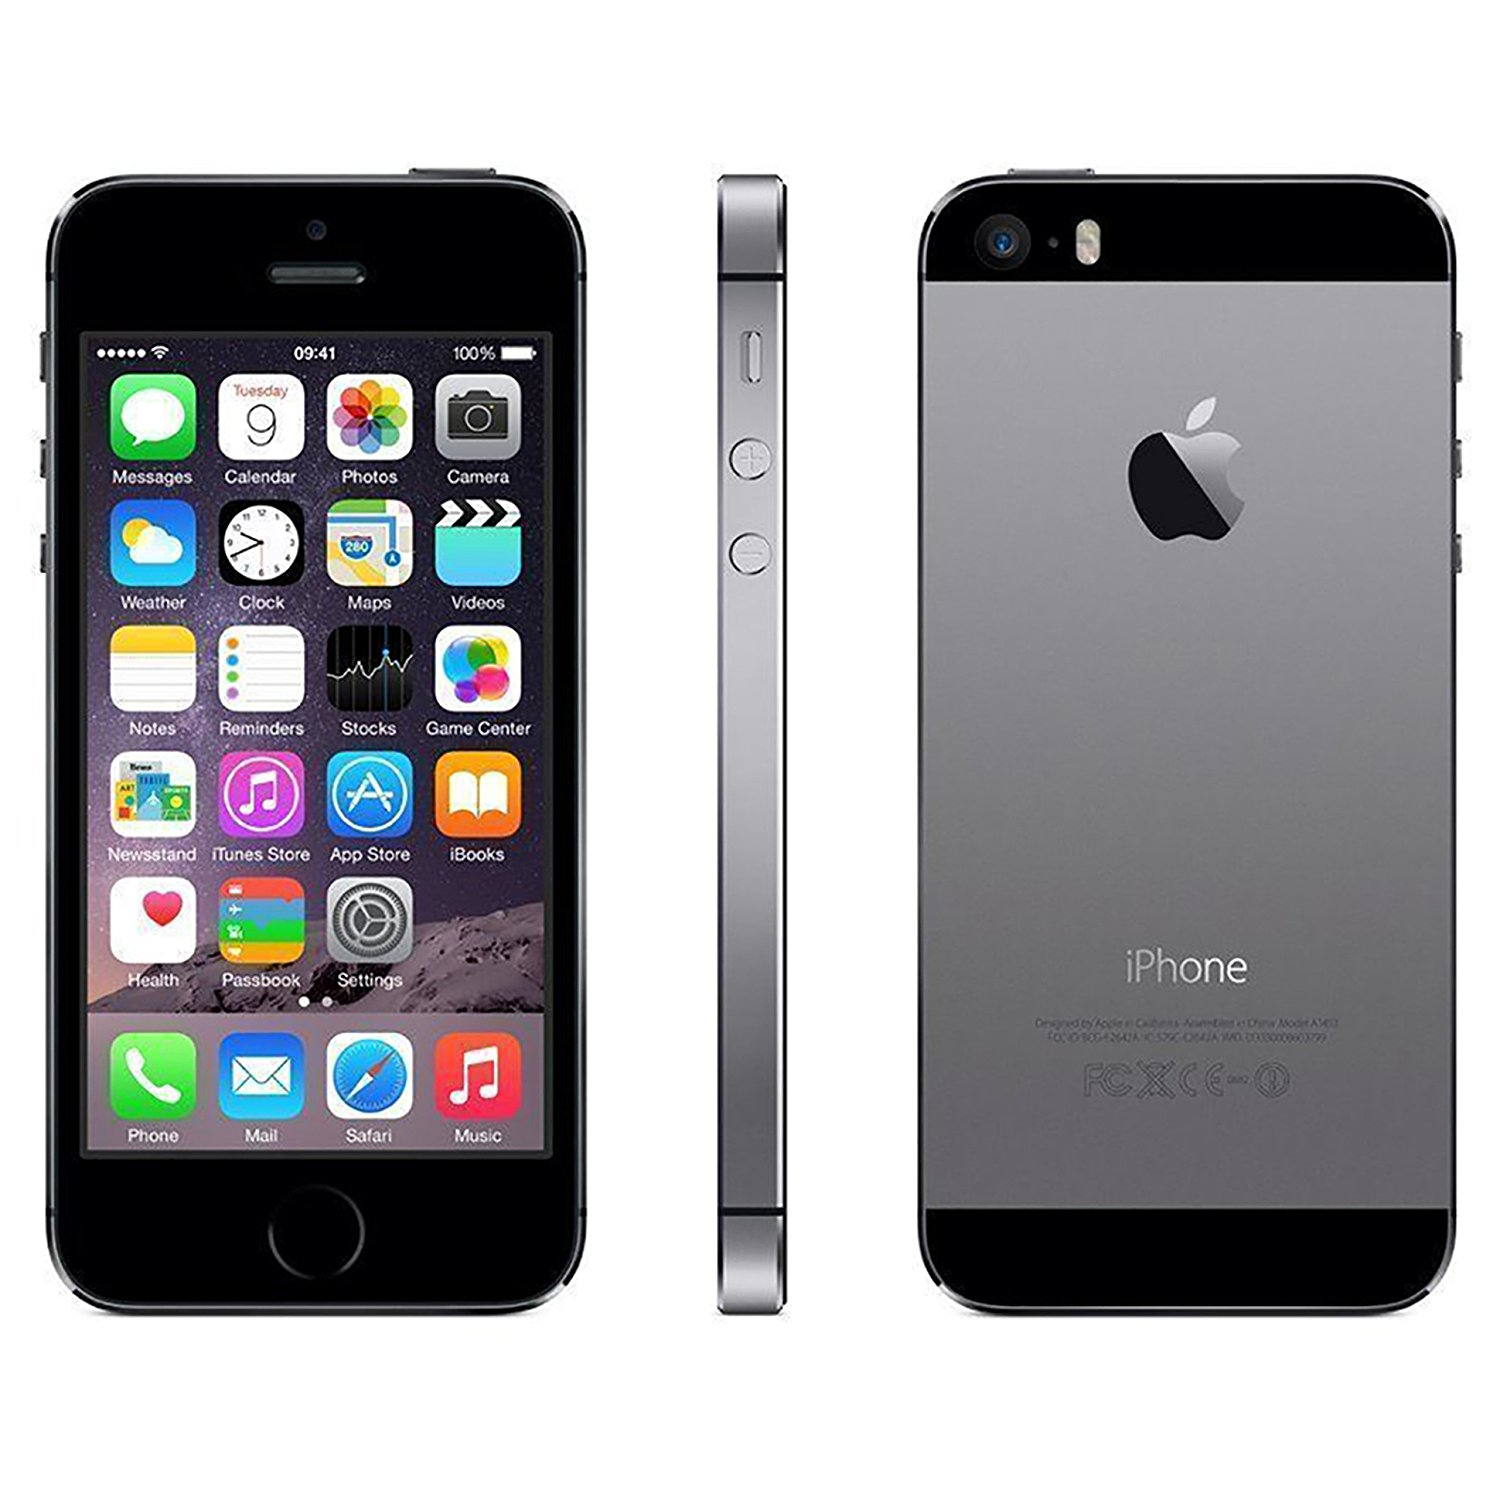 Iphone Mobile Apple Iphone 5s 16gb T Mobile Tanga